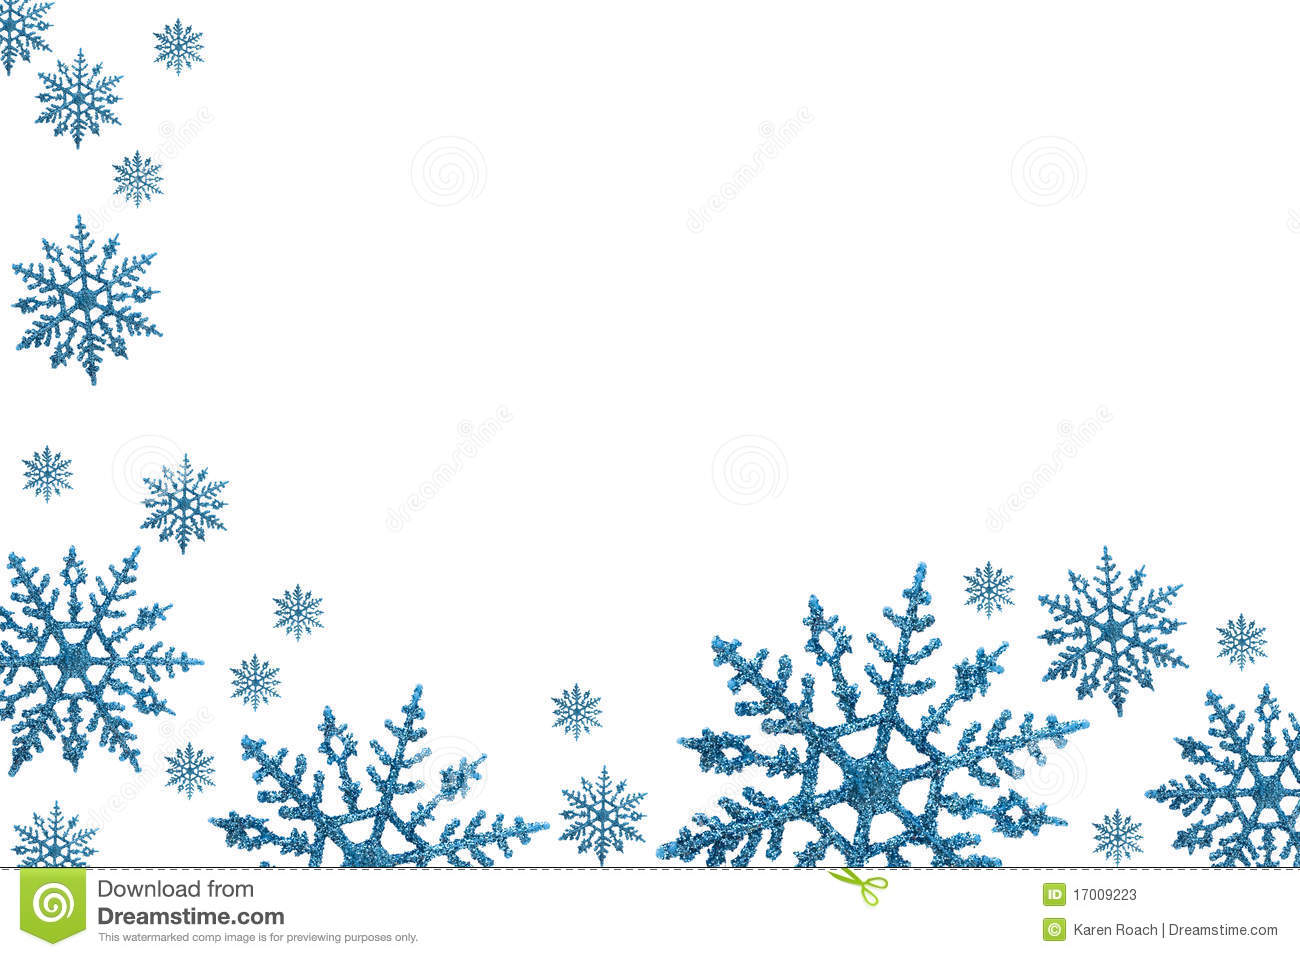 Winter Border Clipart Winter Border Clip-Winter Border Clipart Winter Border Clipart Winter Border Clipart-6